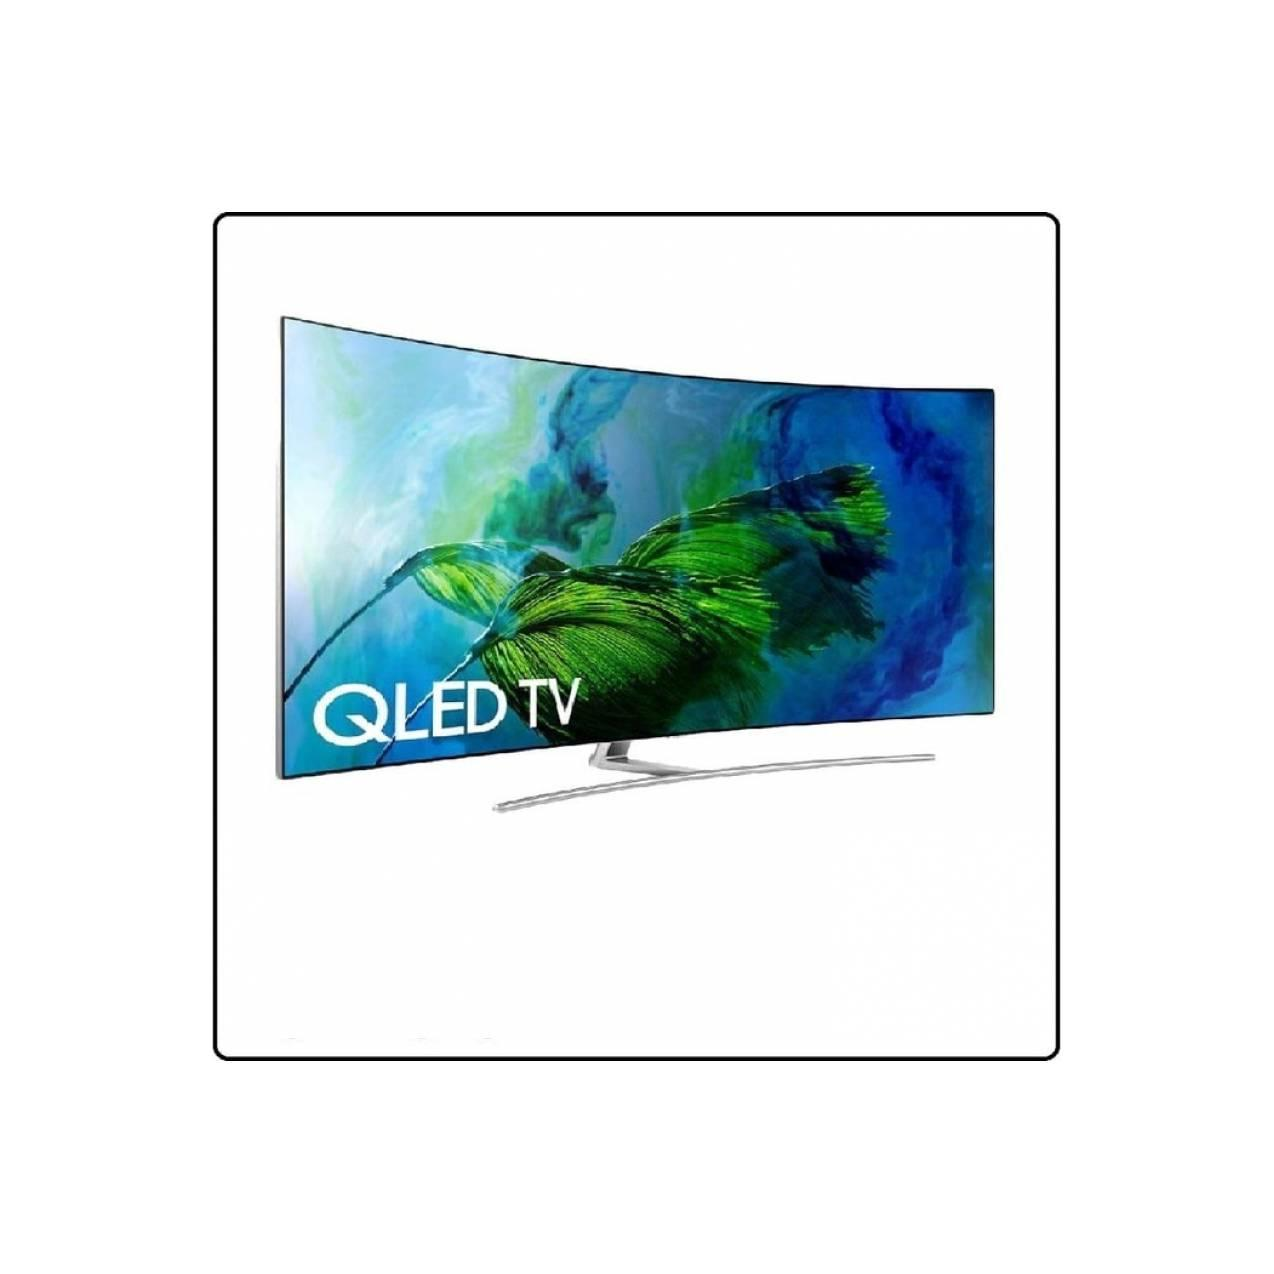 Samsung QA65Q8C 65 Inch QLED 4K Curved Smart LED TV